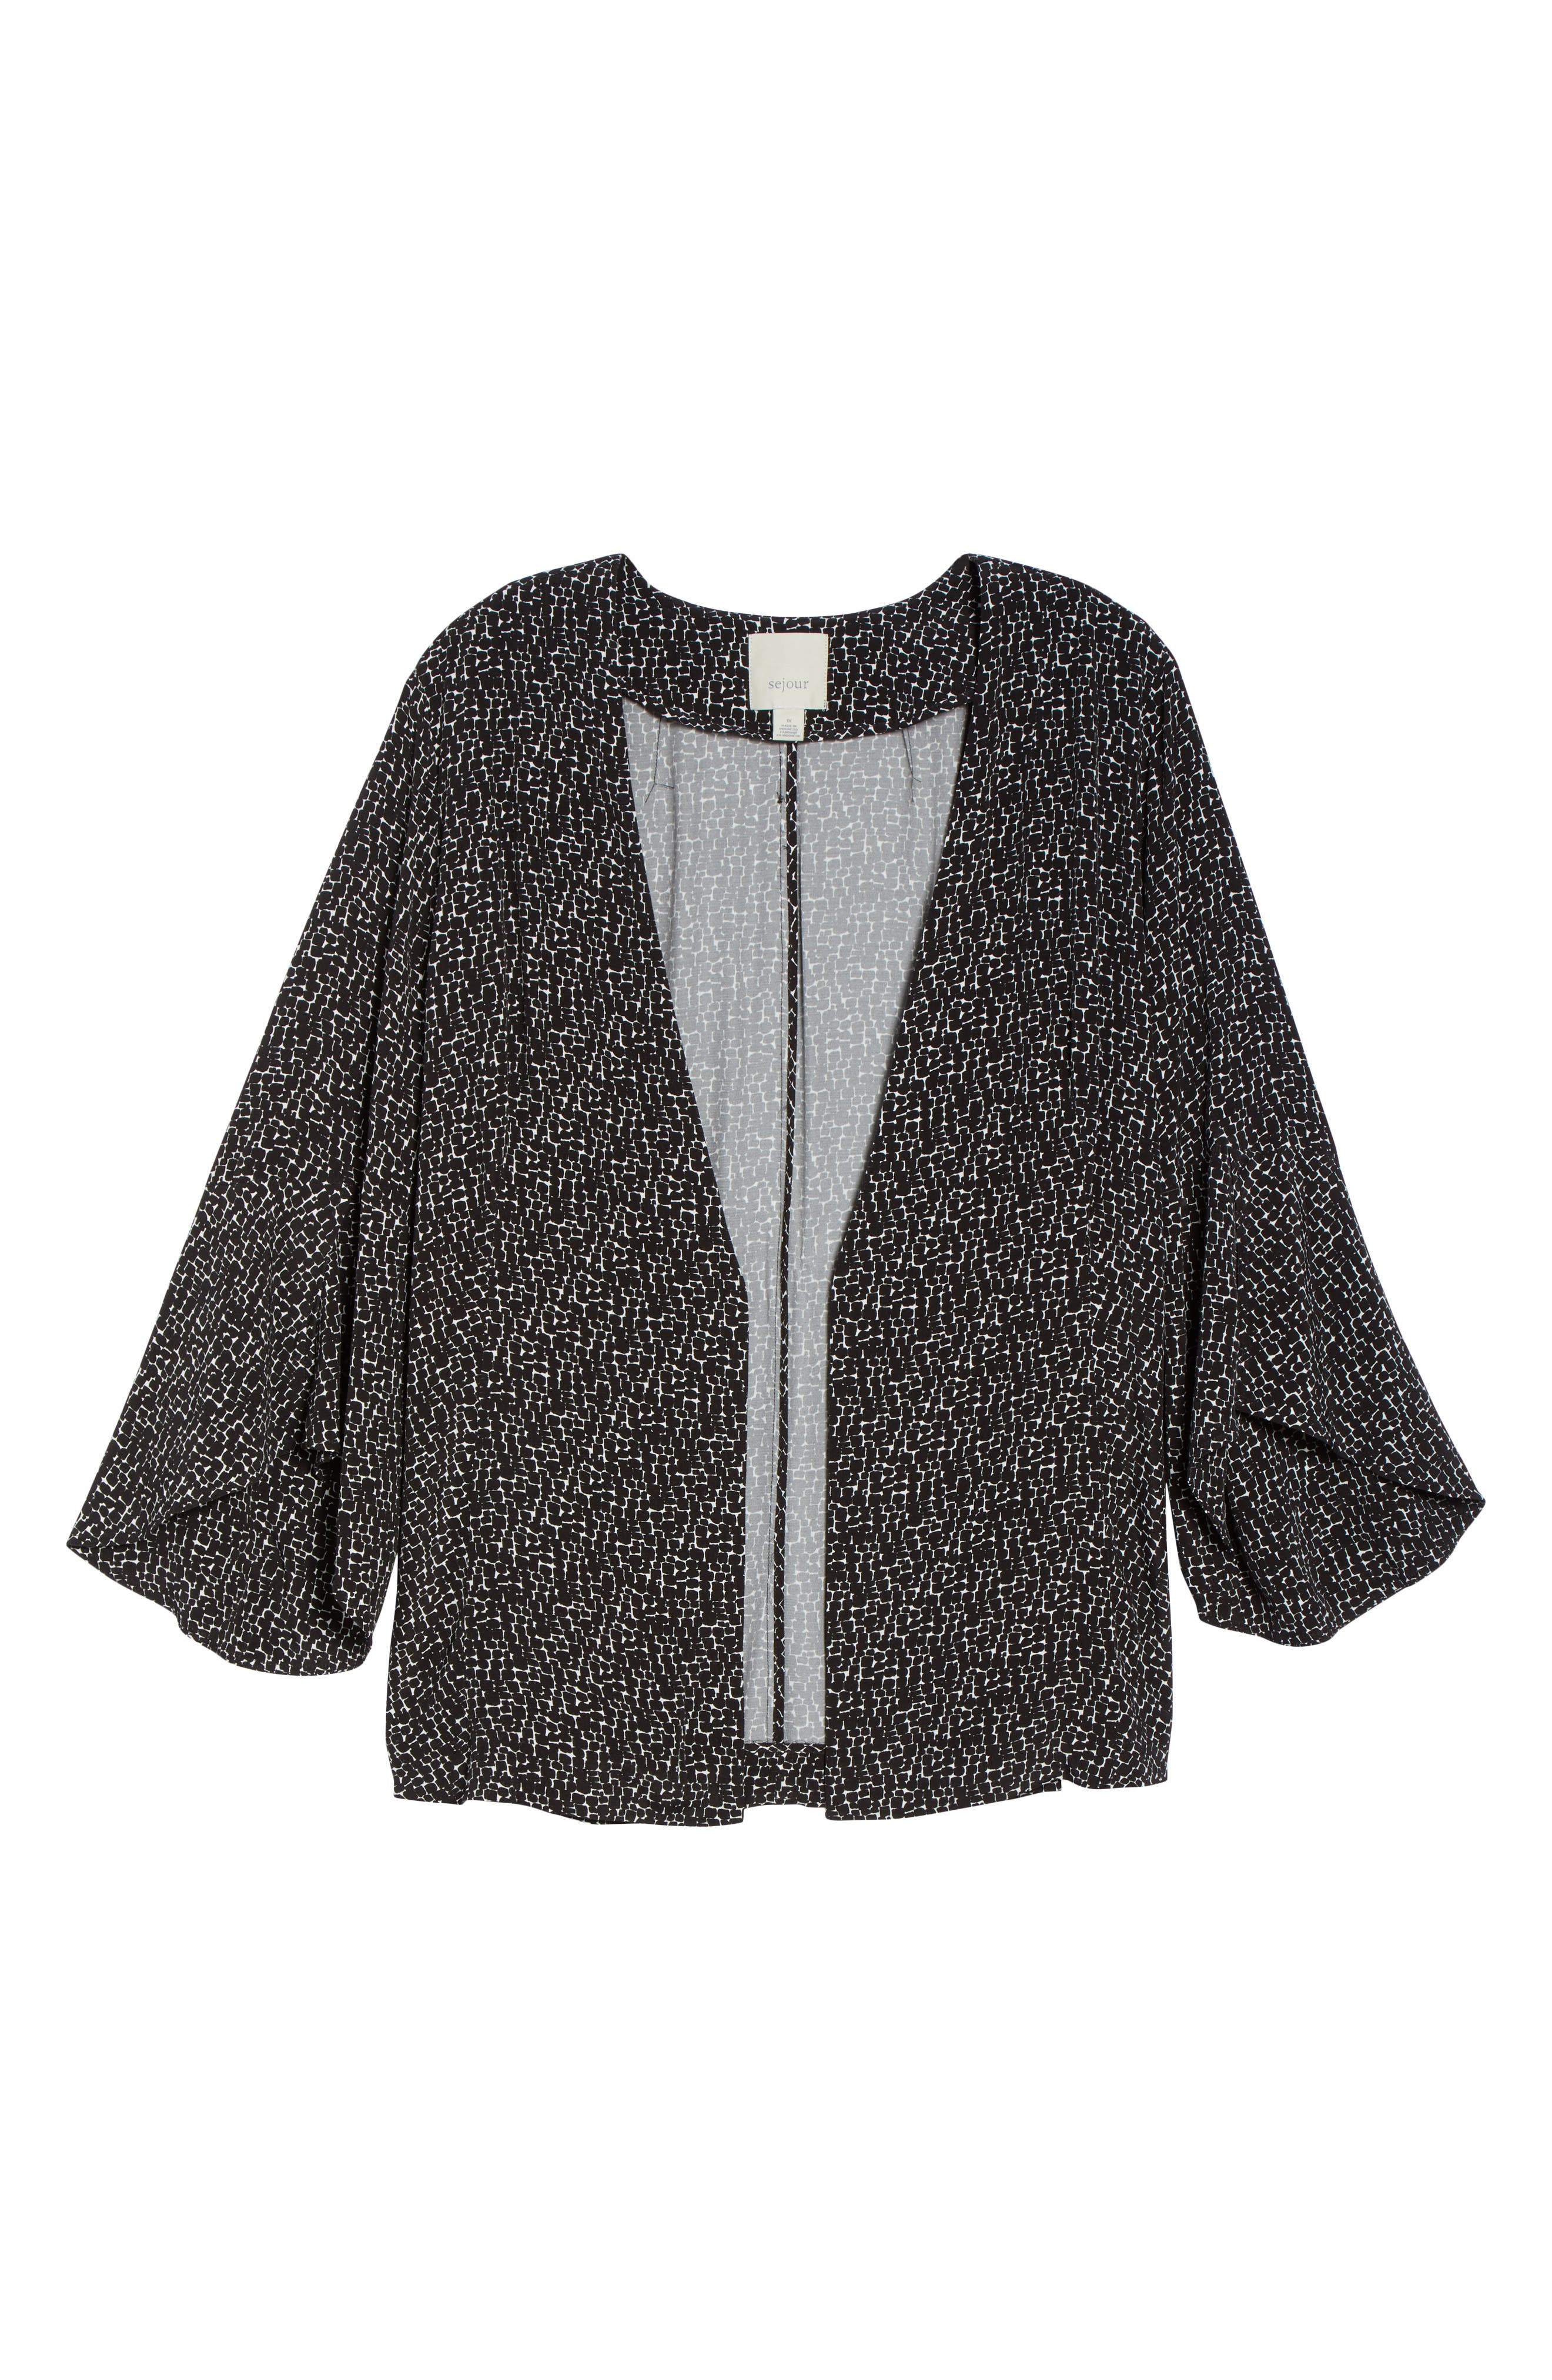 Ruffle Sleeve Soft Crepe Jacket,                             Alternate thumbnail 6, color,                             BLACK-IVORY GIA PRINT